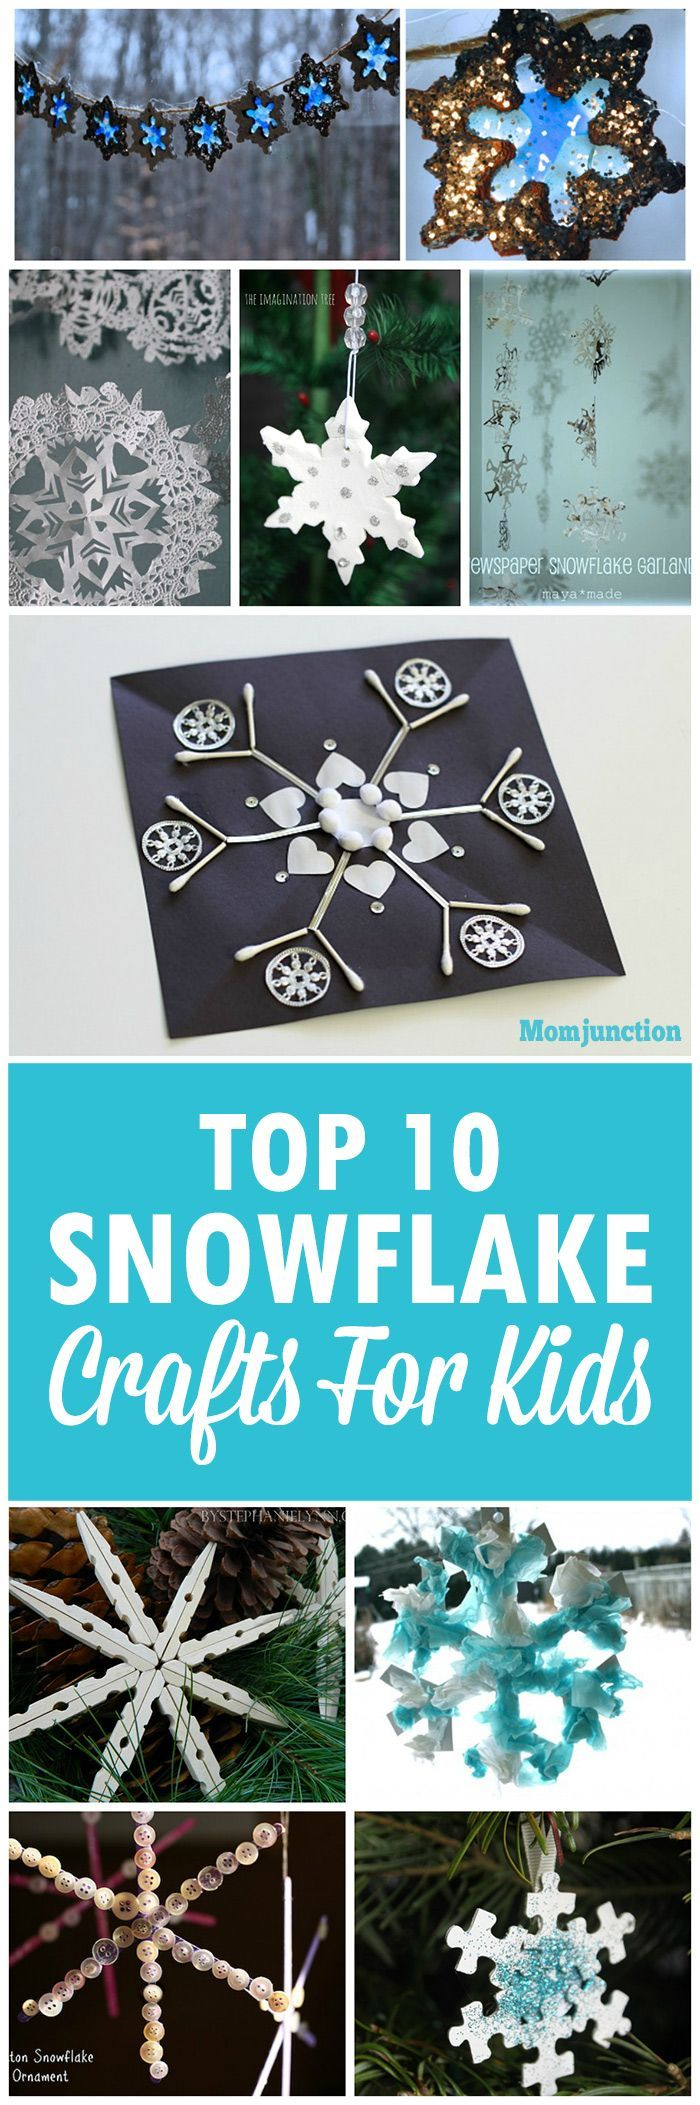 Snowflake ornaments crafts - Top 10 Snowflake Crafts For Kids Let Your Child Bring The Fun Of Snow Indoors